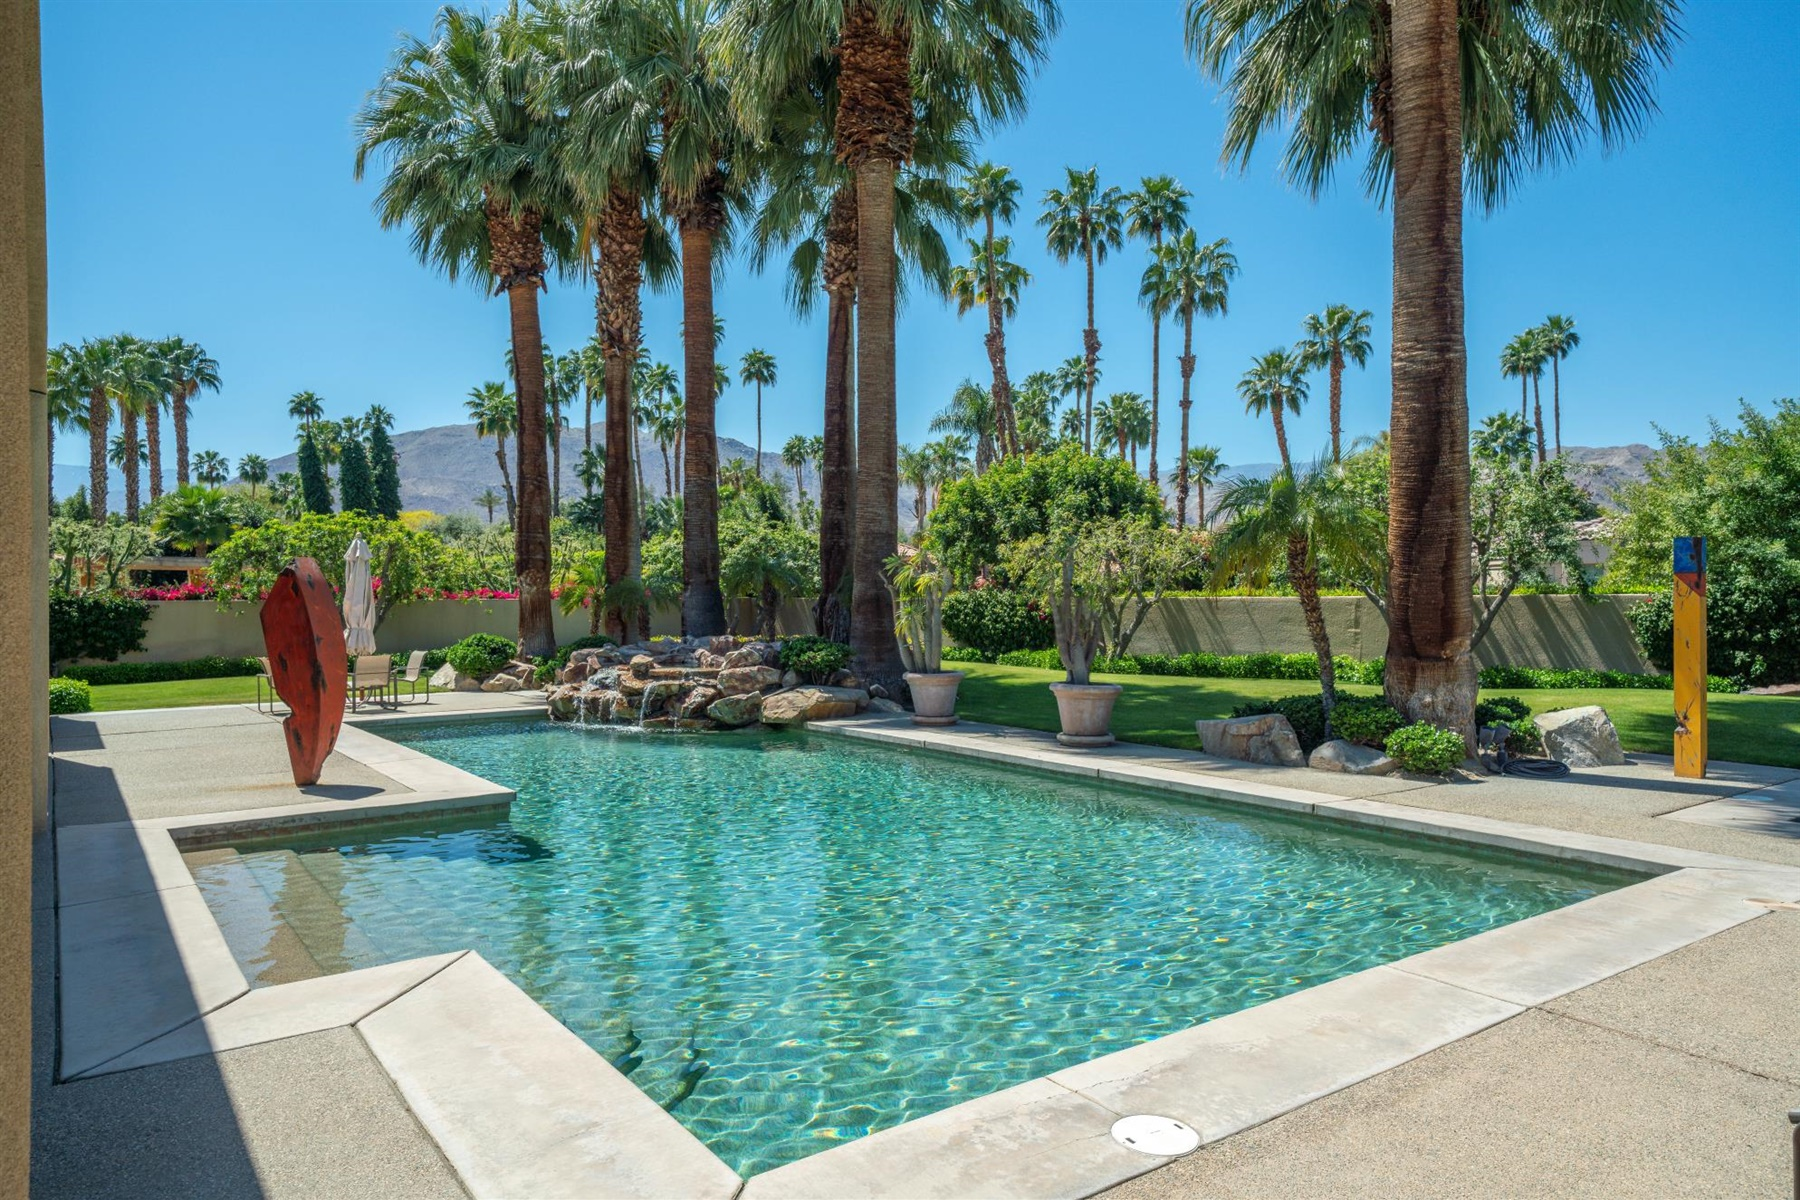 Single Family Homes for Sale at 40590 Morningstar Road Rancho Mirage, California 92270 United States